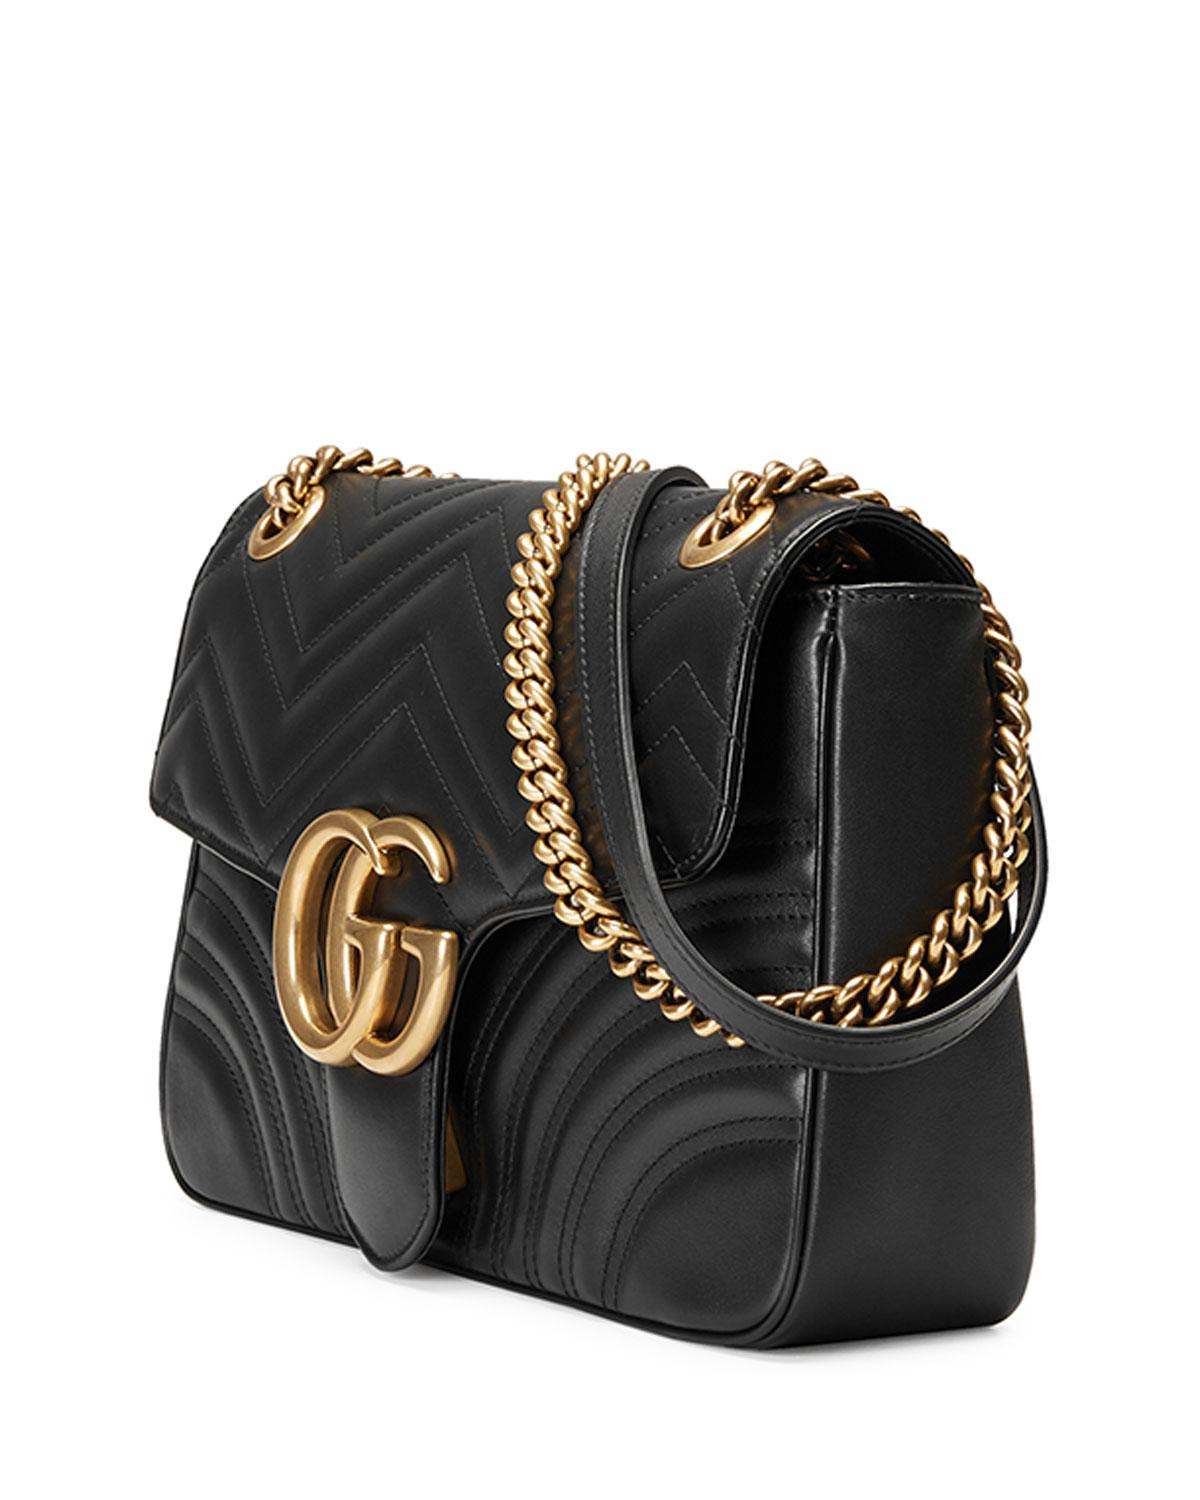 edc45fc0d23d Gucci GG Marmont Medium Matelassé Shoulder Bag in Black - Save 45% - Lyst